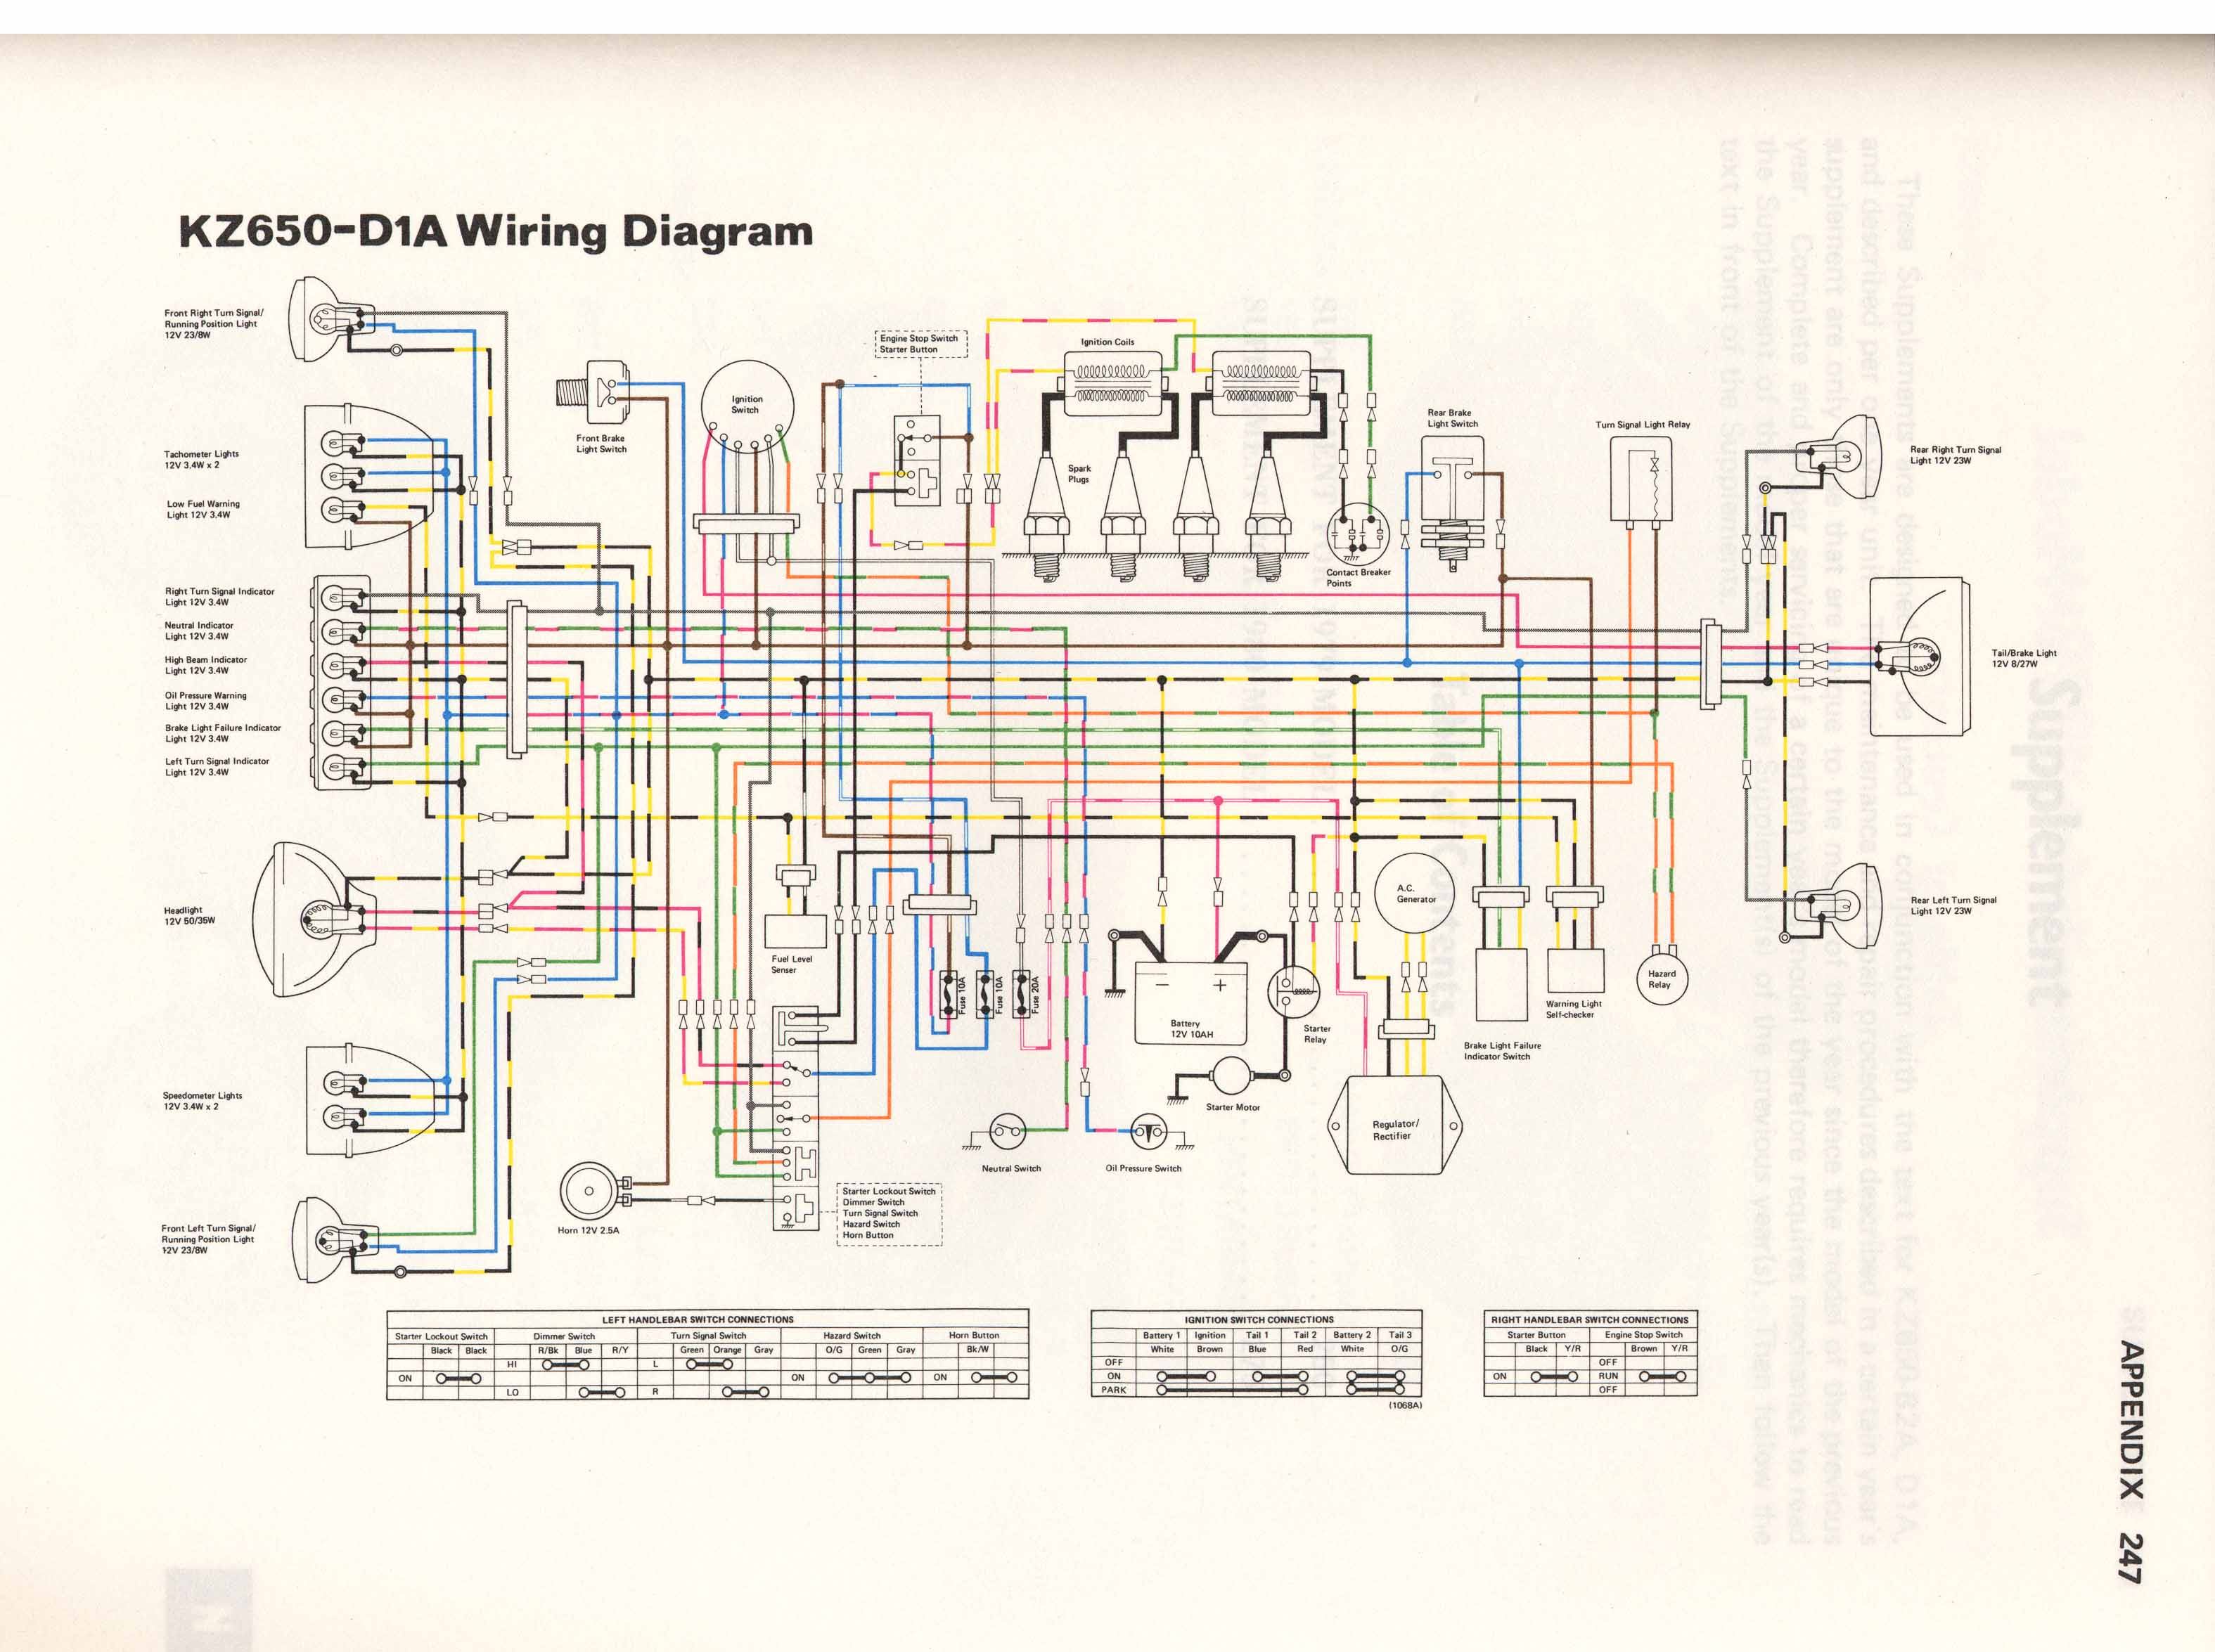 WRG-9423] Kawasaki Kl250 Wiring Diagram on